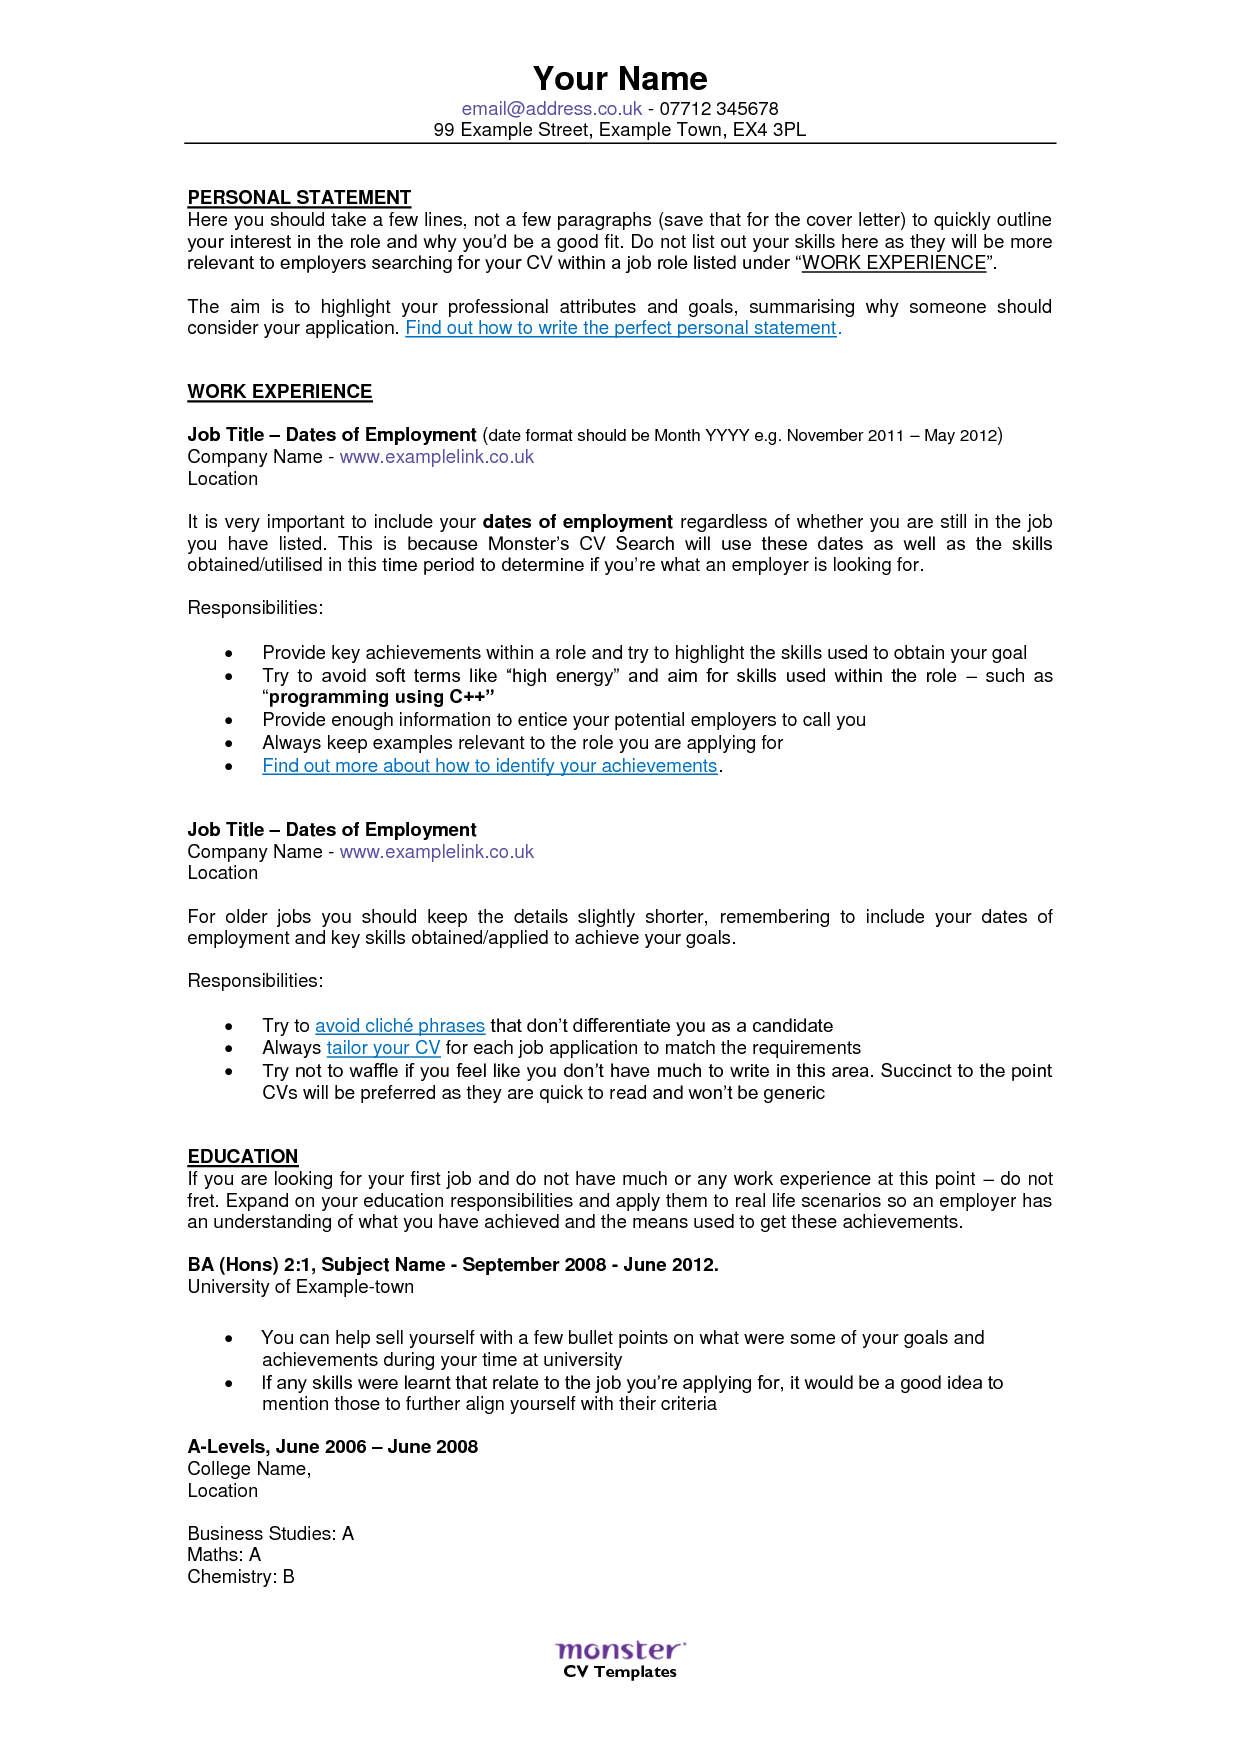 cover letter samples monster template search resumes montreal - Monster Sample Resume